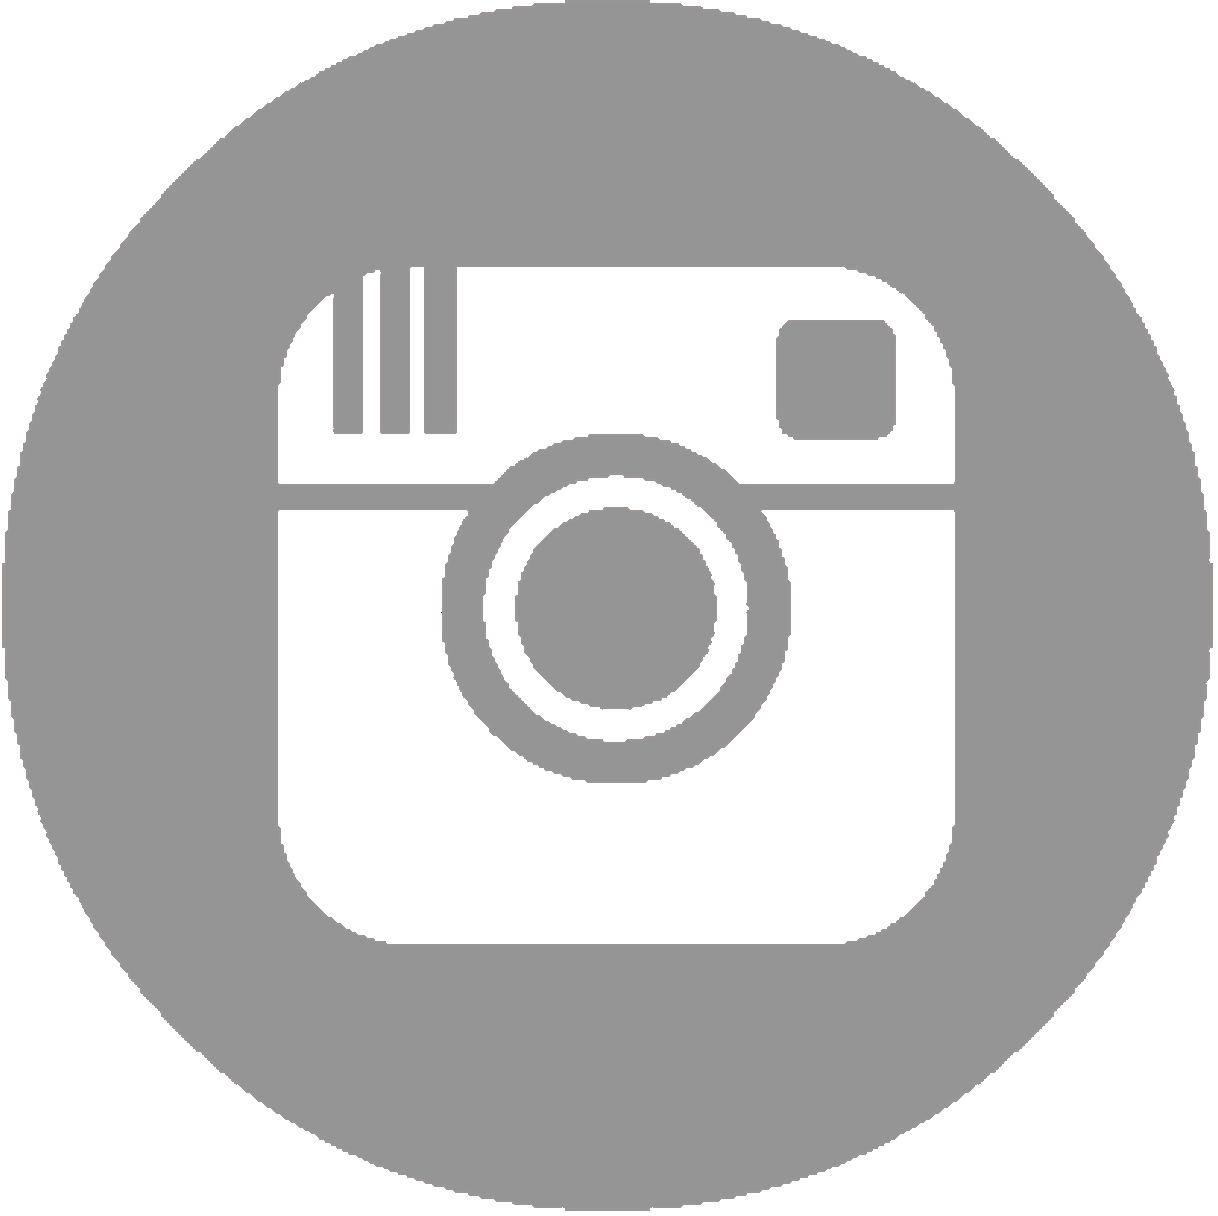 Vector Logo Computer Instagram Icons Free Clipart HD PNG Image